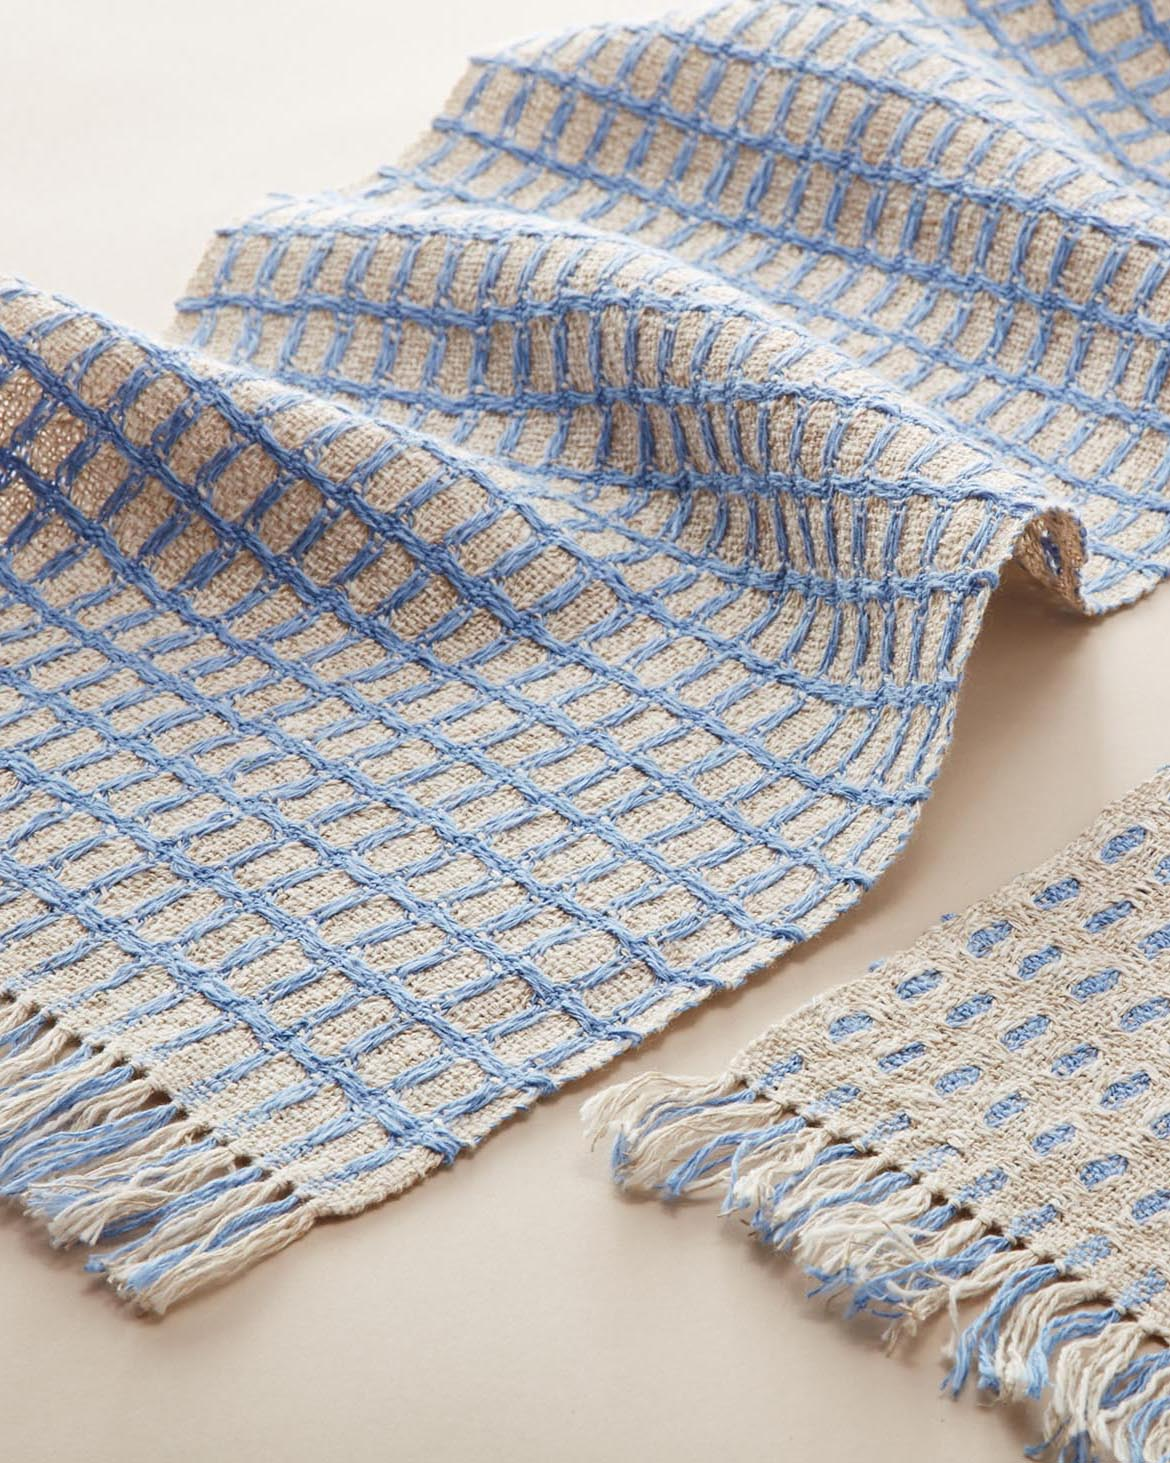 Deflected Doubleweave Scarf Weaving Pattern